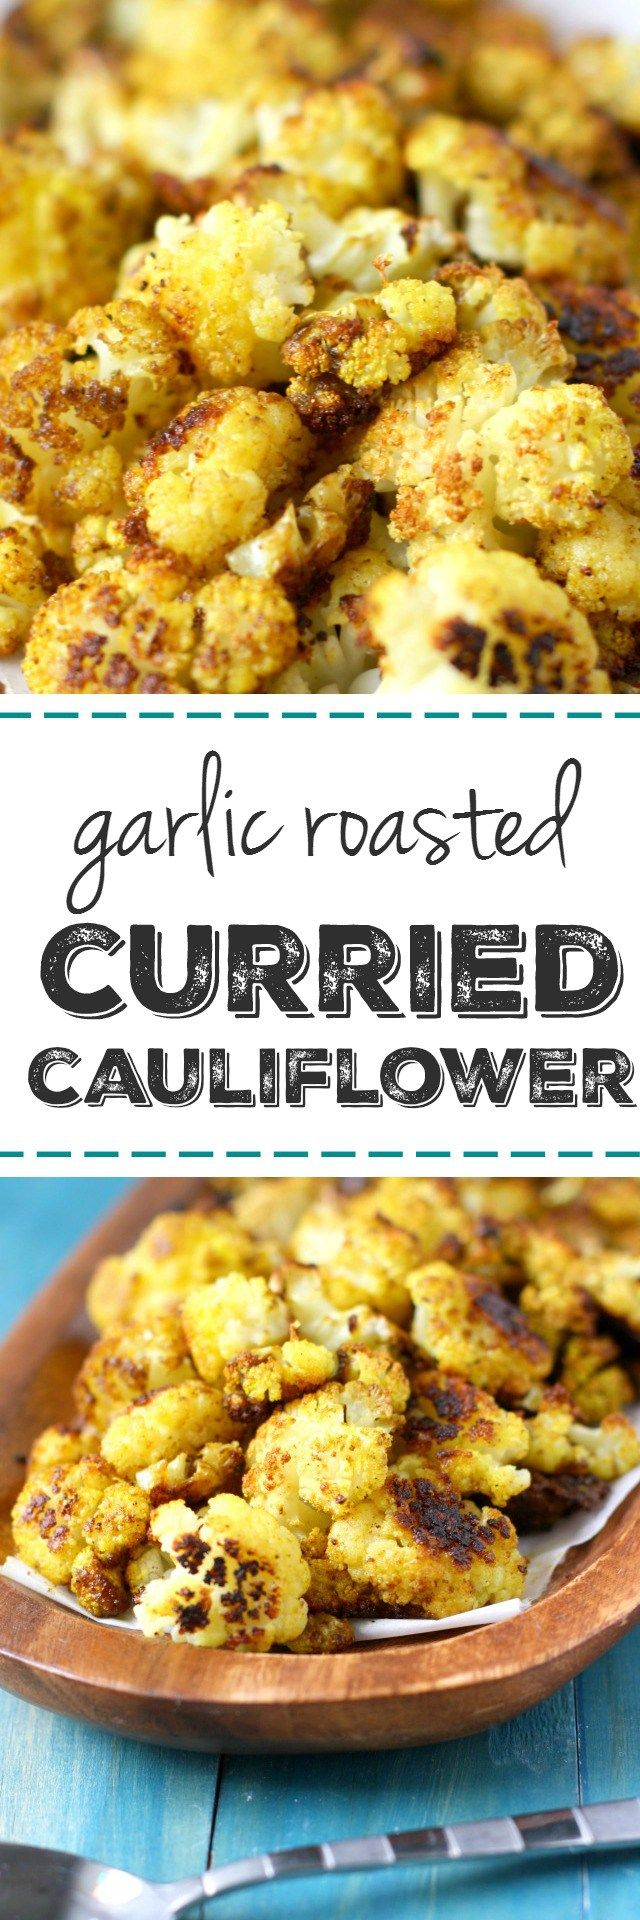 My FAVORITE way to eat cauliflower! Roasted garlic curried cauliflower is easy, healhty, and spicy!